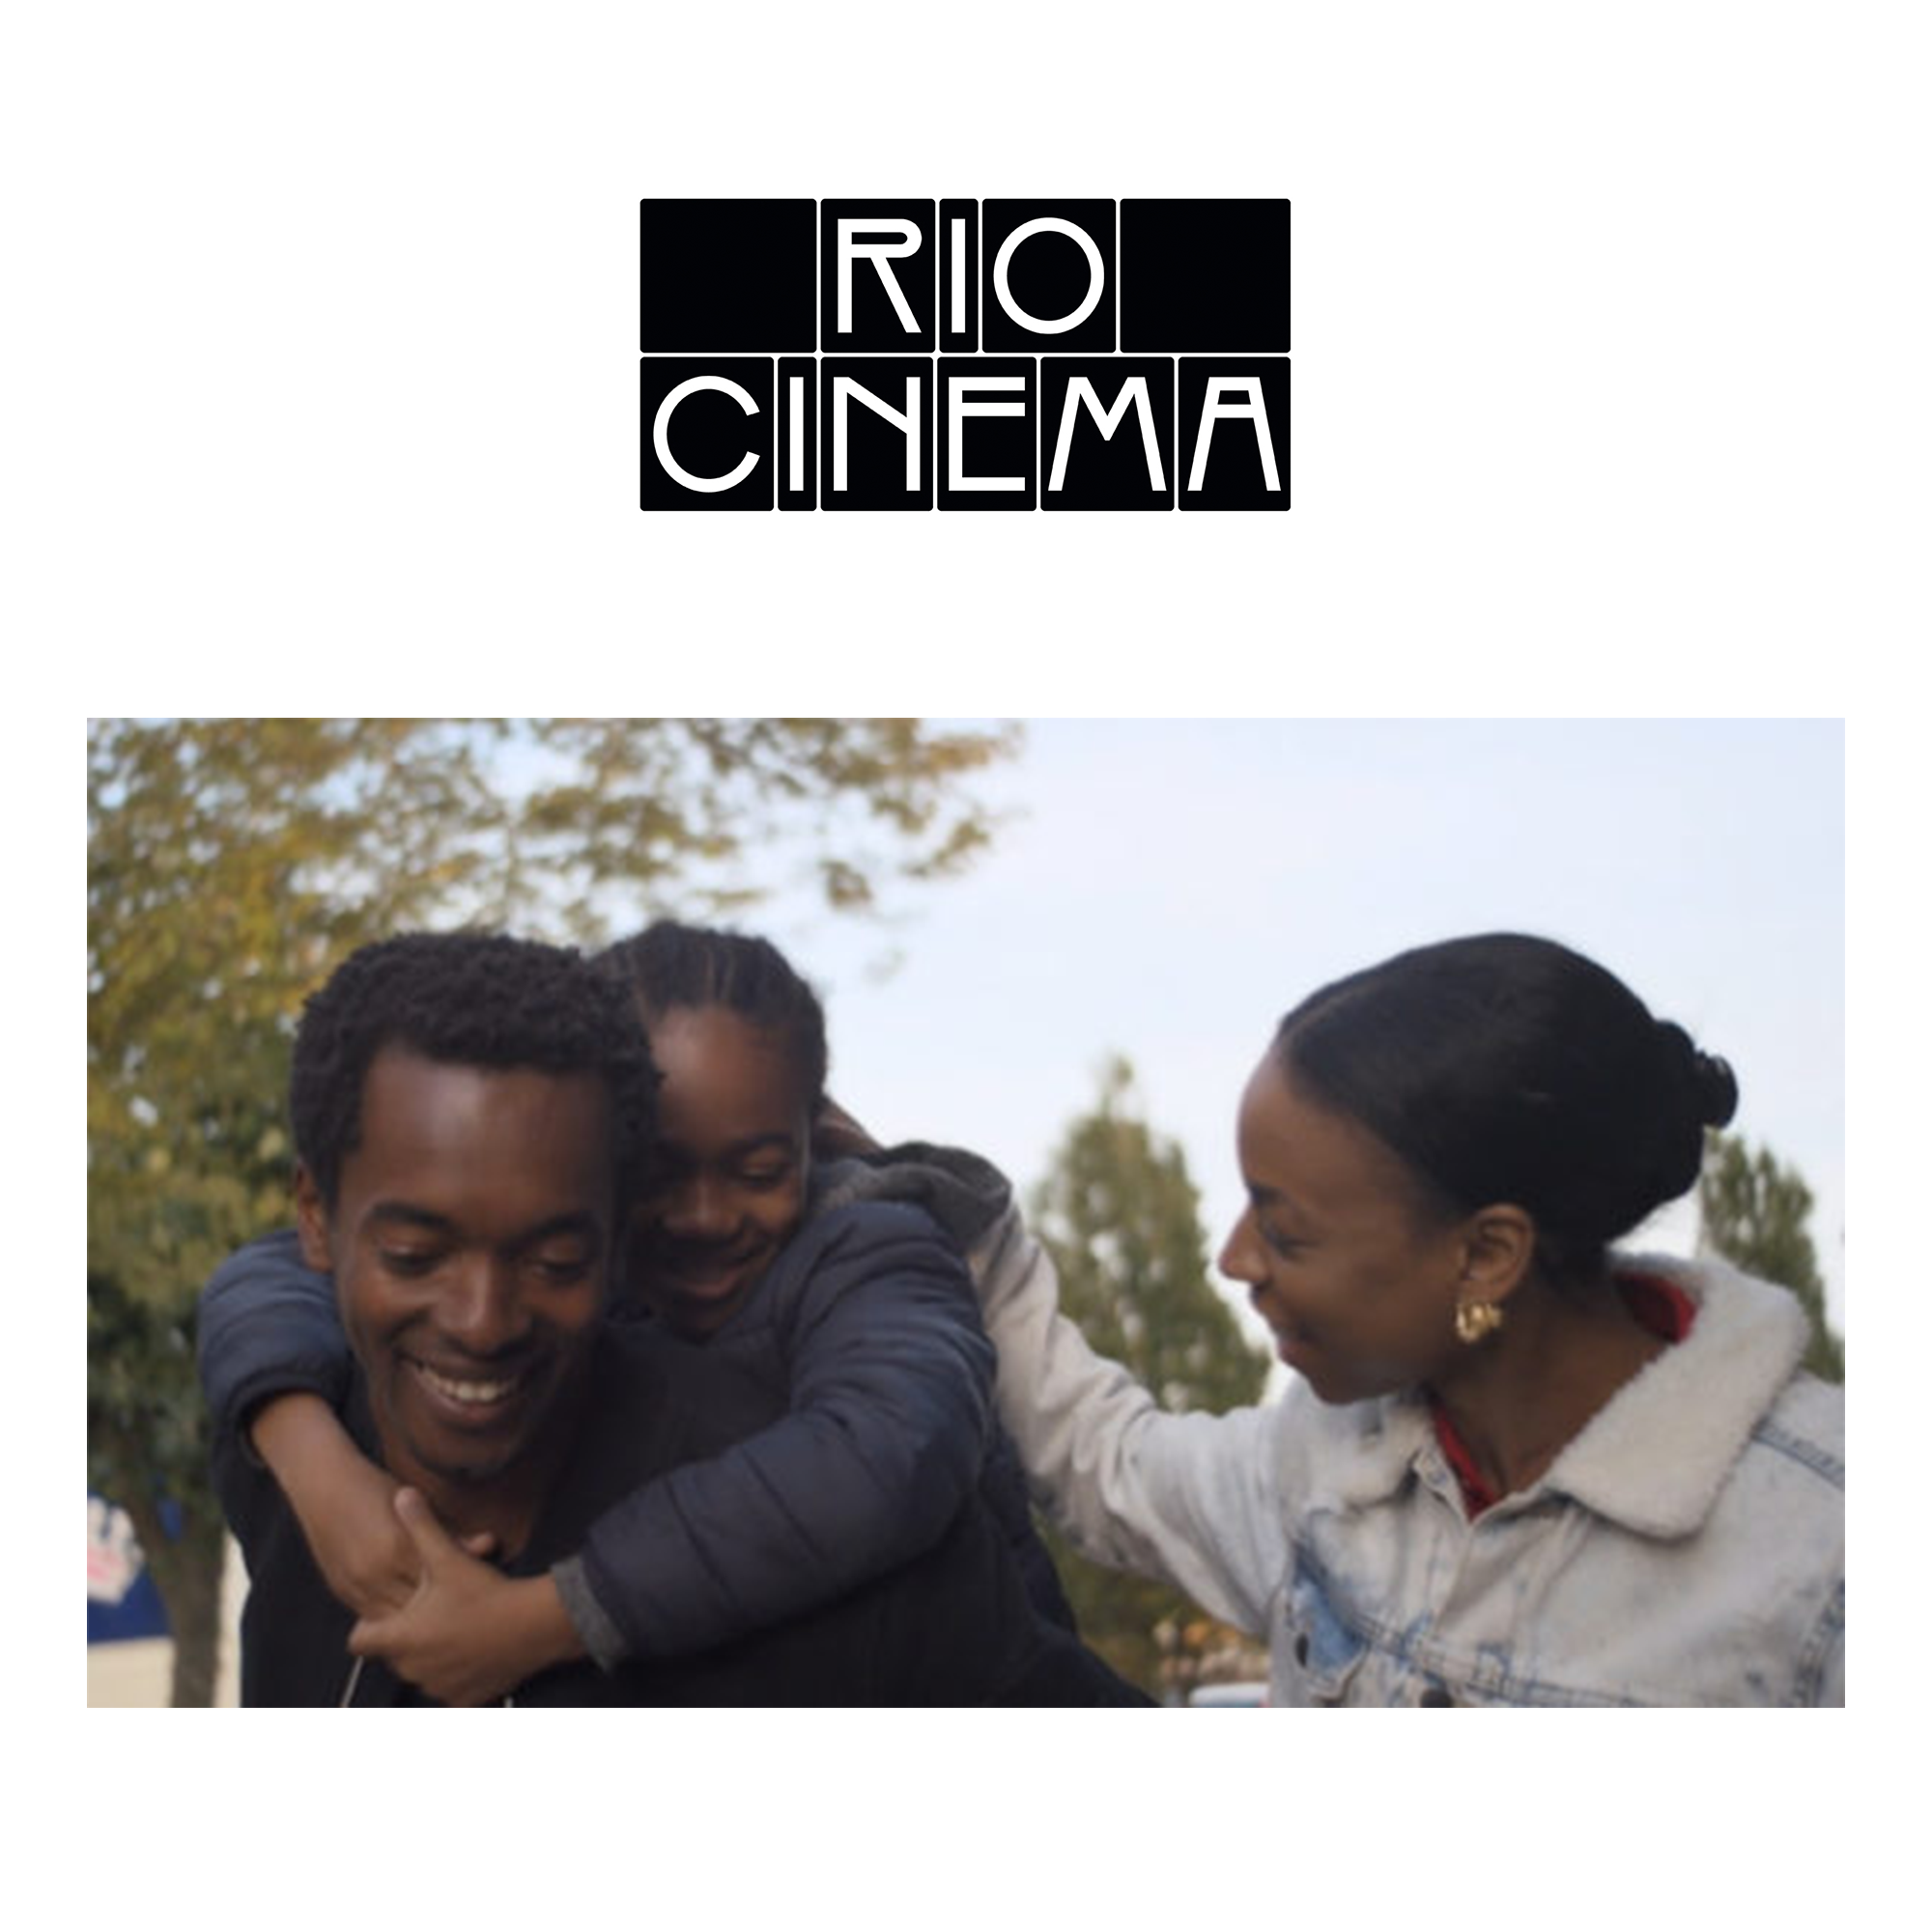 REAL at Rio Cinema